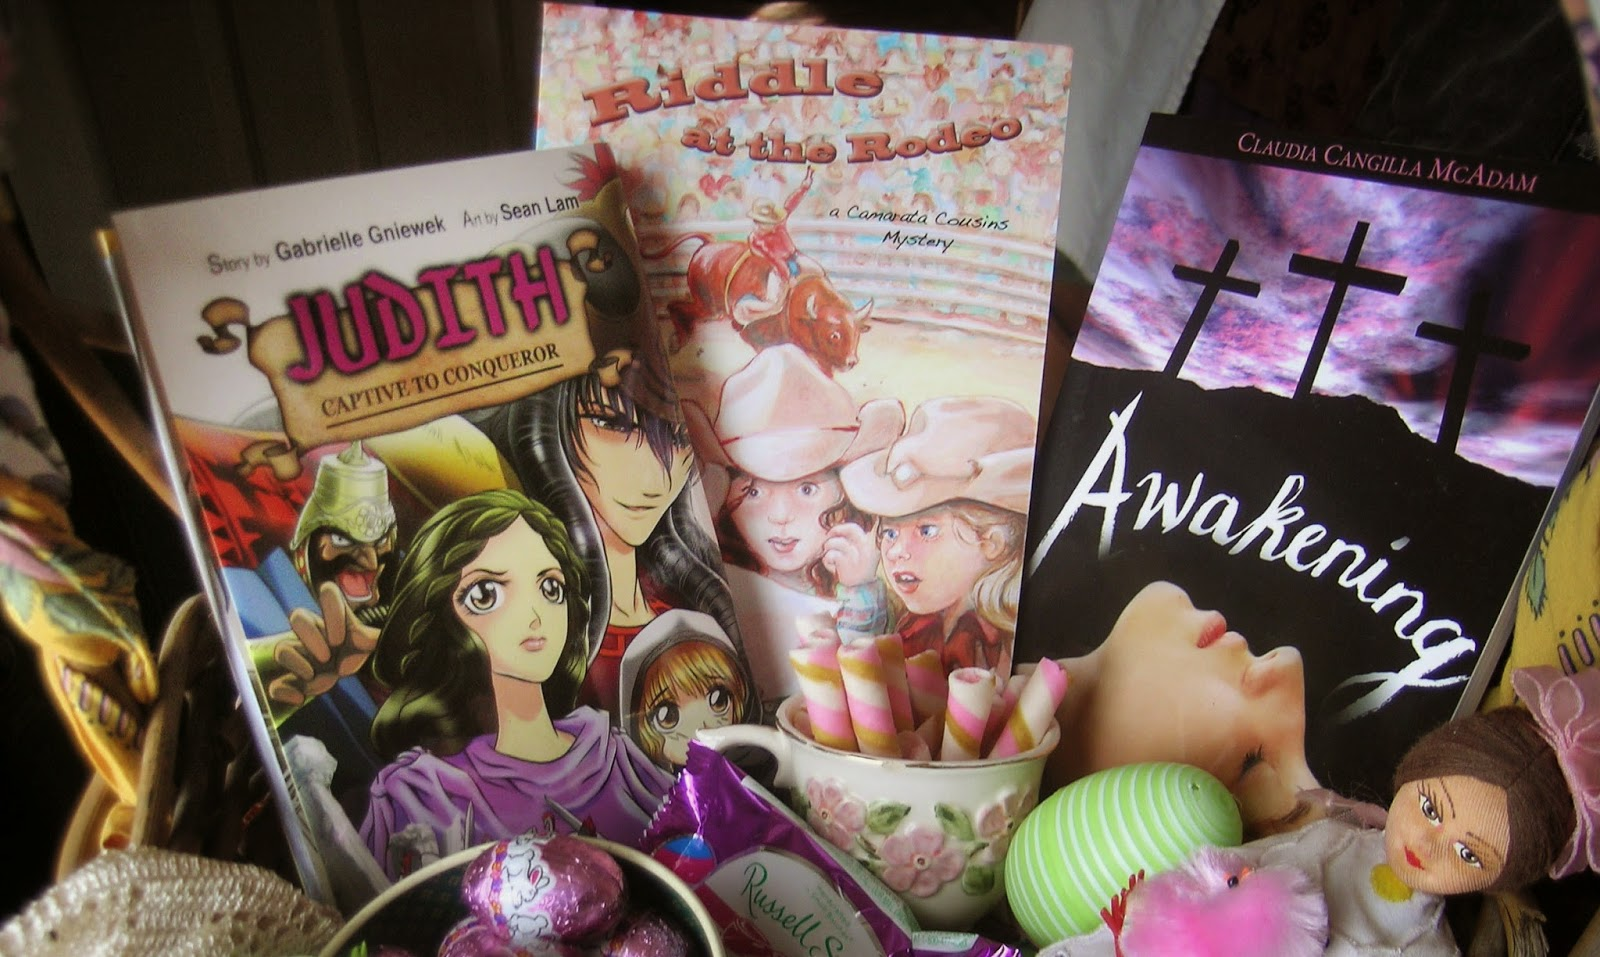 Easter basket tour tween girls chestertonpress specially for this easter i am pleased to offer one of my daughters fav reads the mystery riddle at the rodeo by claudia cangilla mcadam also known as negle Images